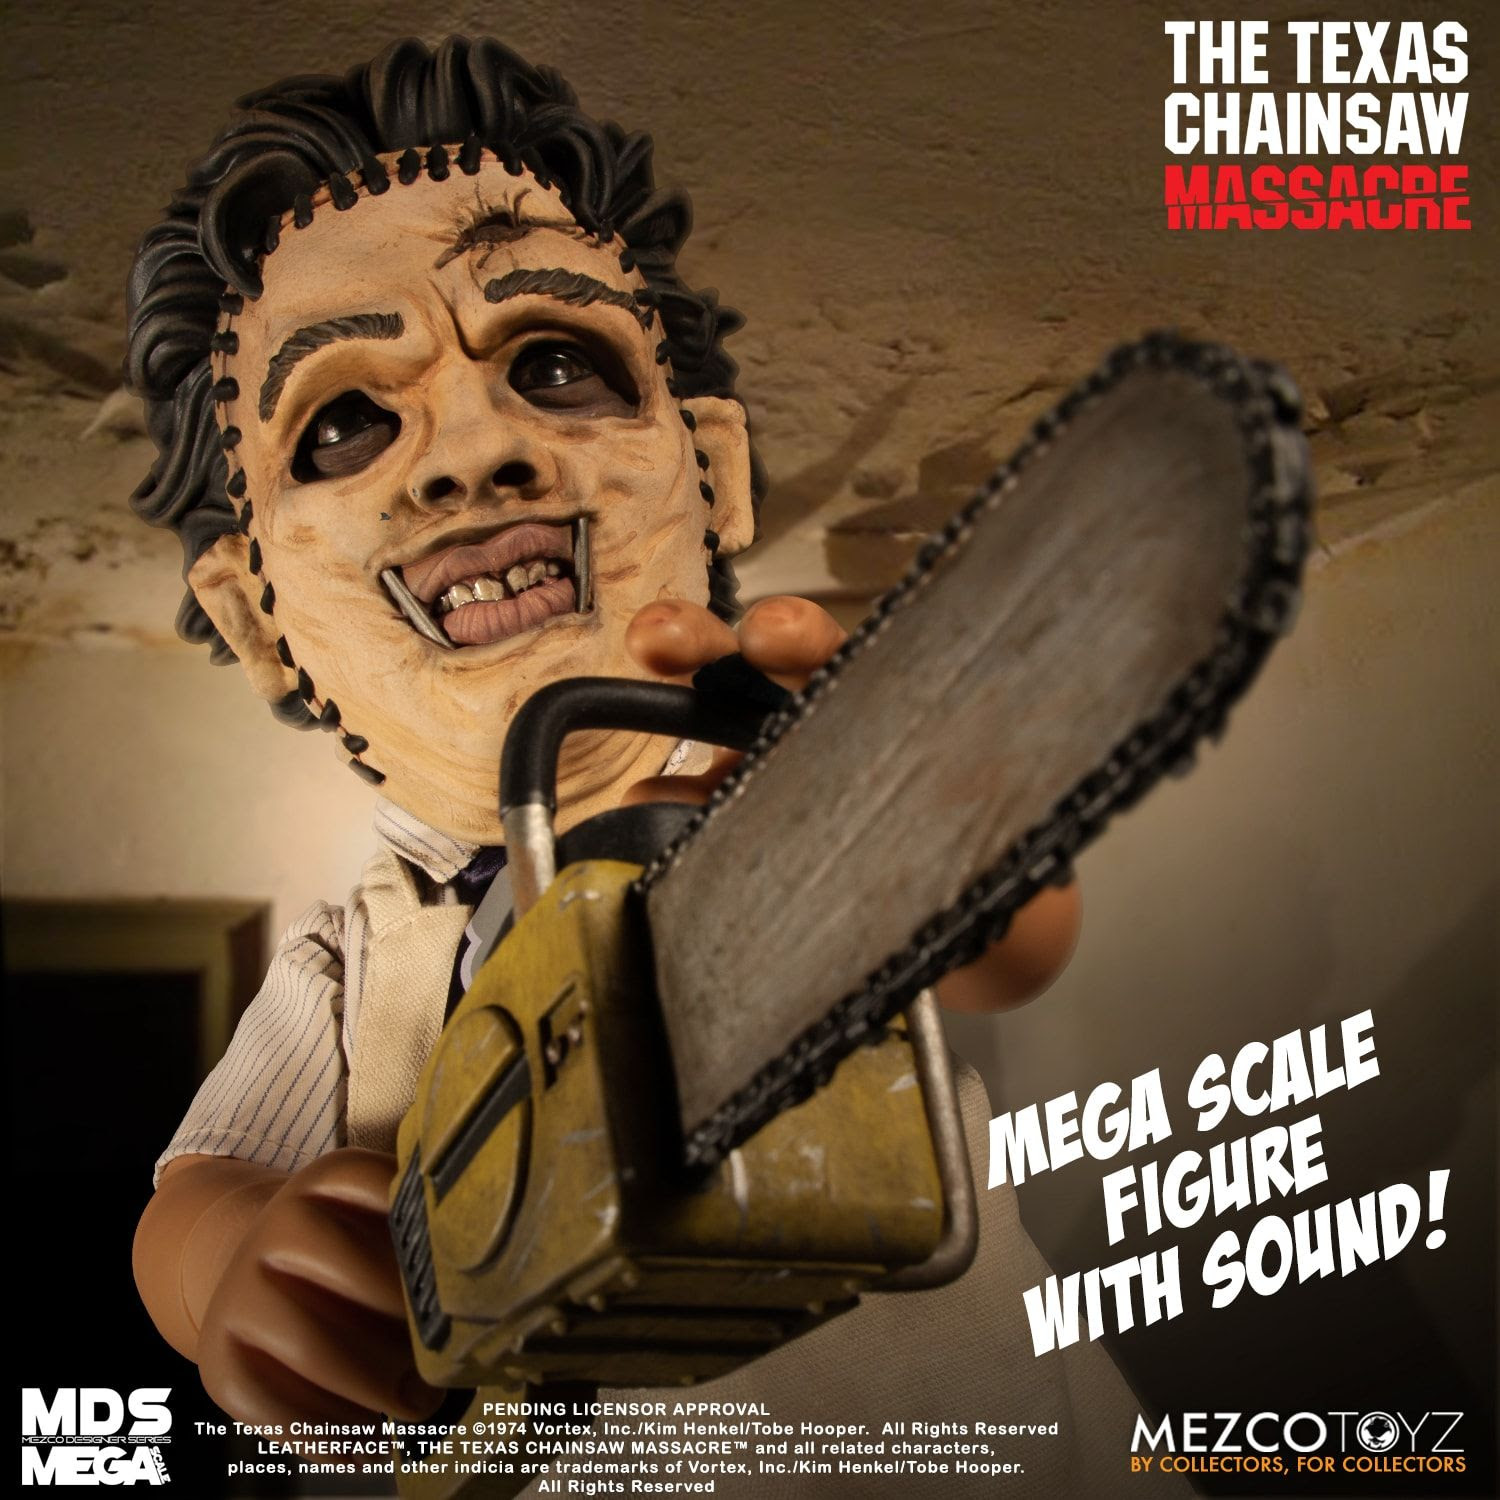 Image of The Texas Chainsaw Massacre (1974): Leatherface with Sound - SEPTEMBER 2020